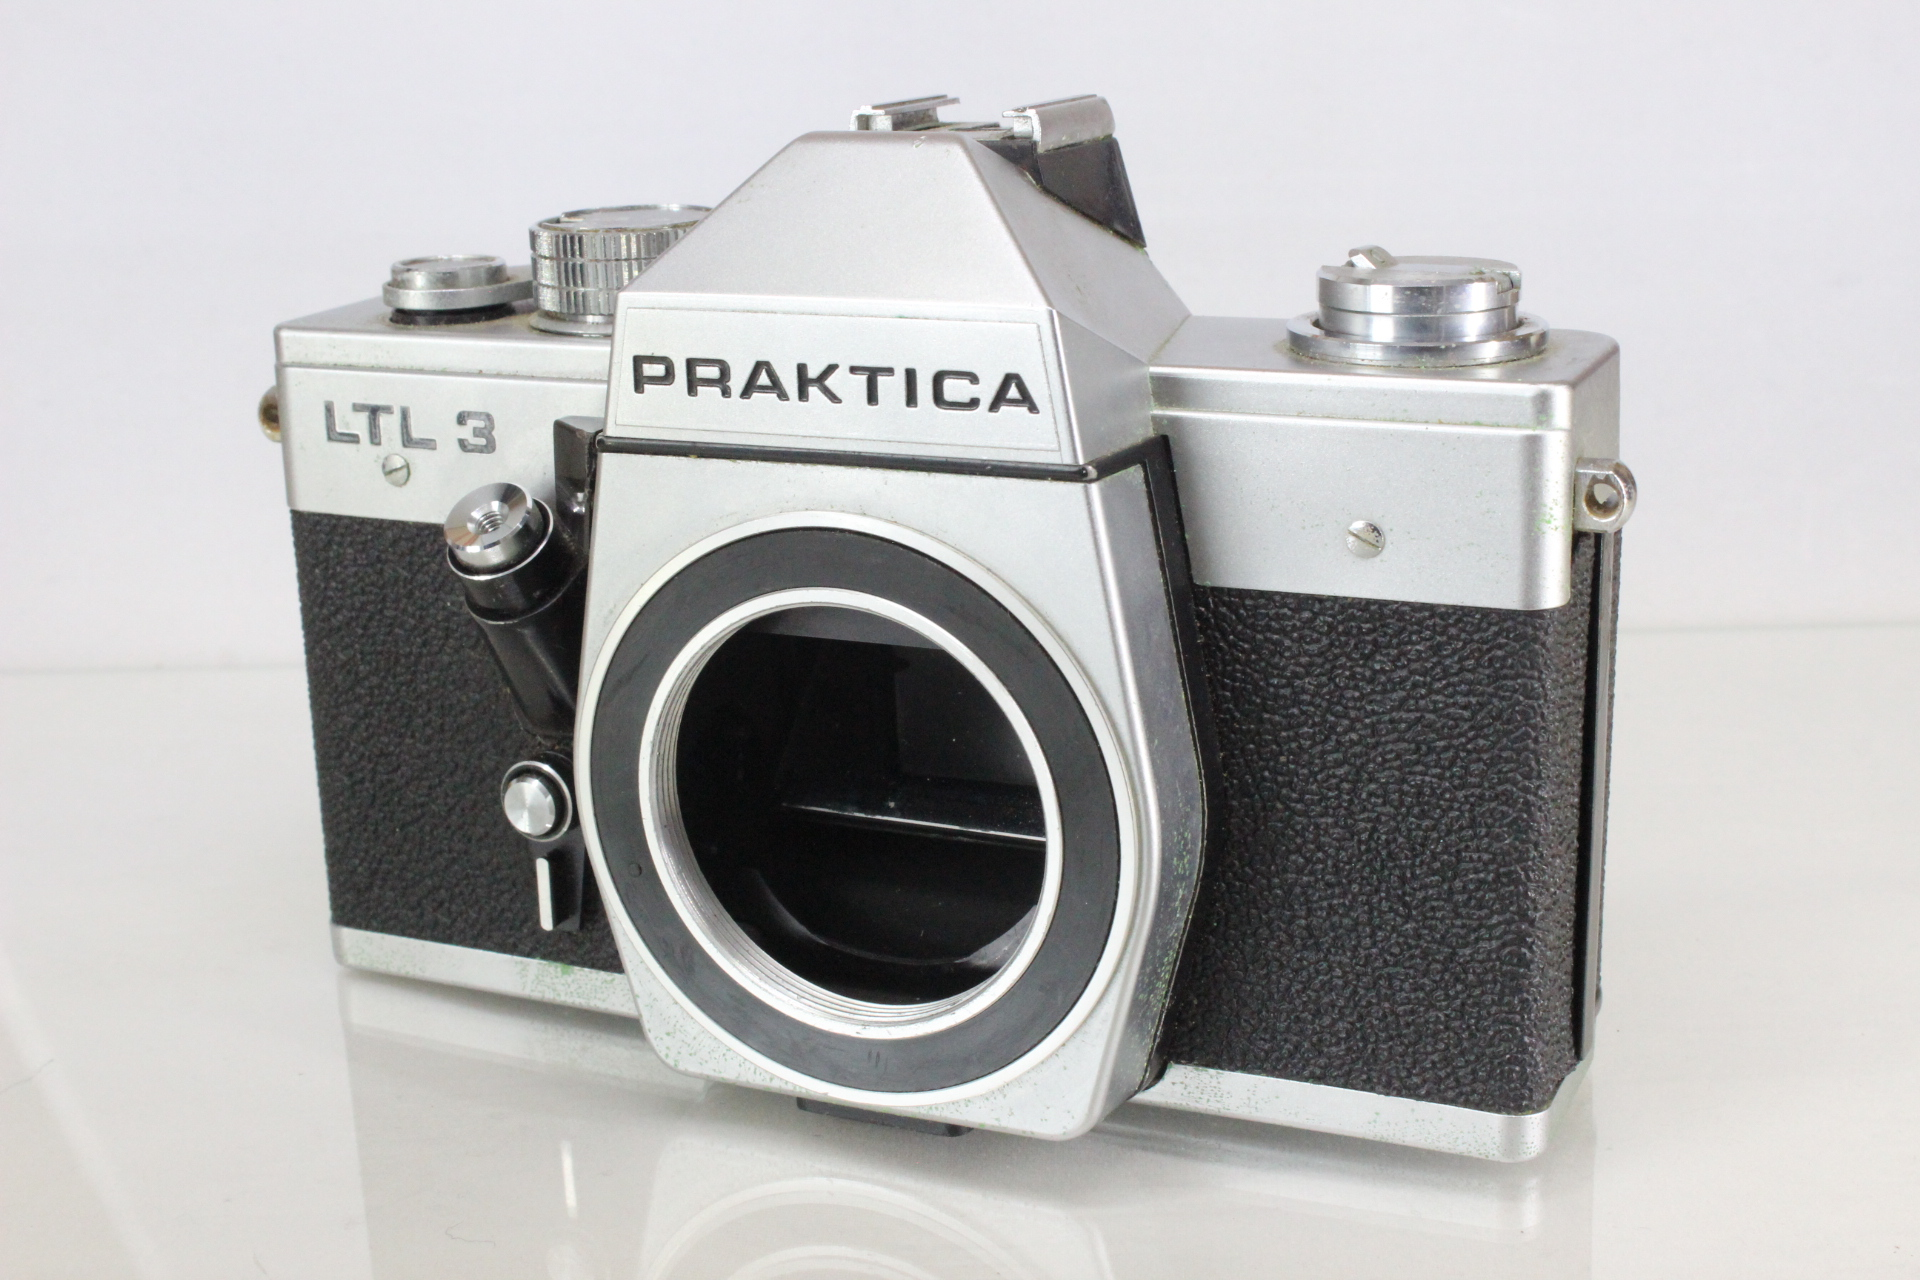 Praktica ltl 3 35mm film camera body photocapital